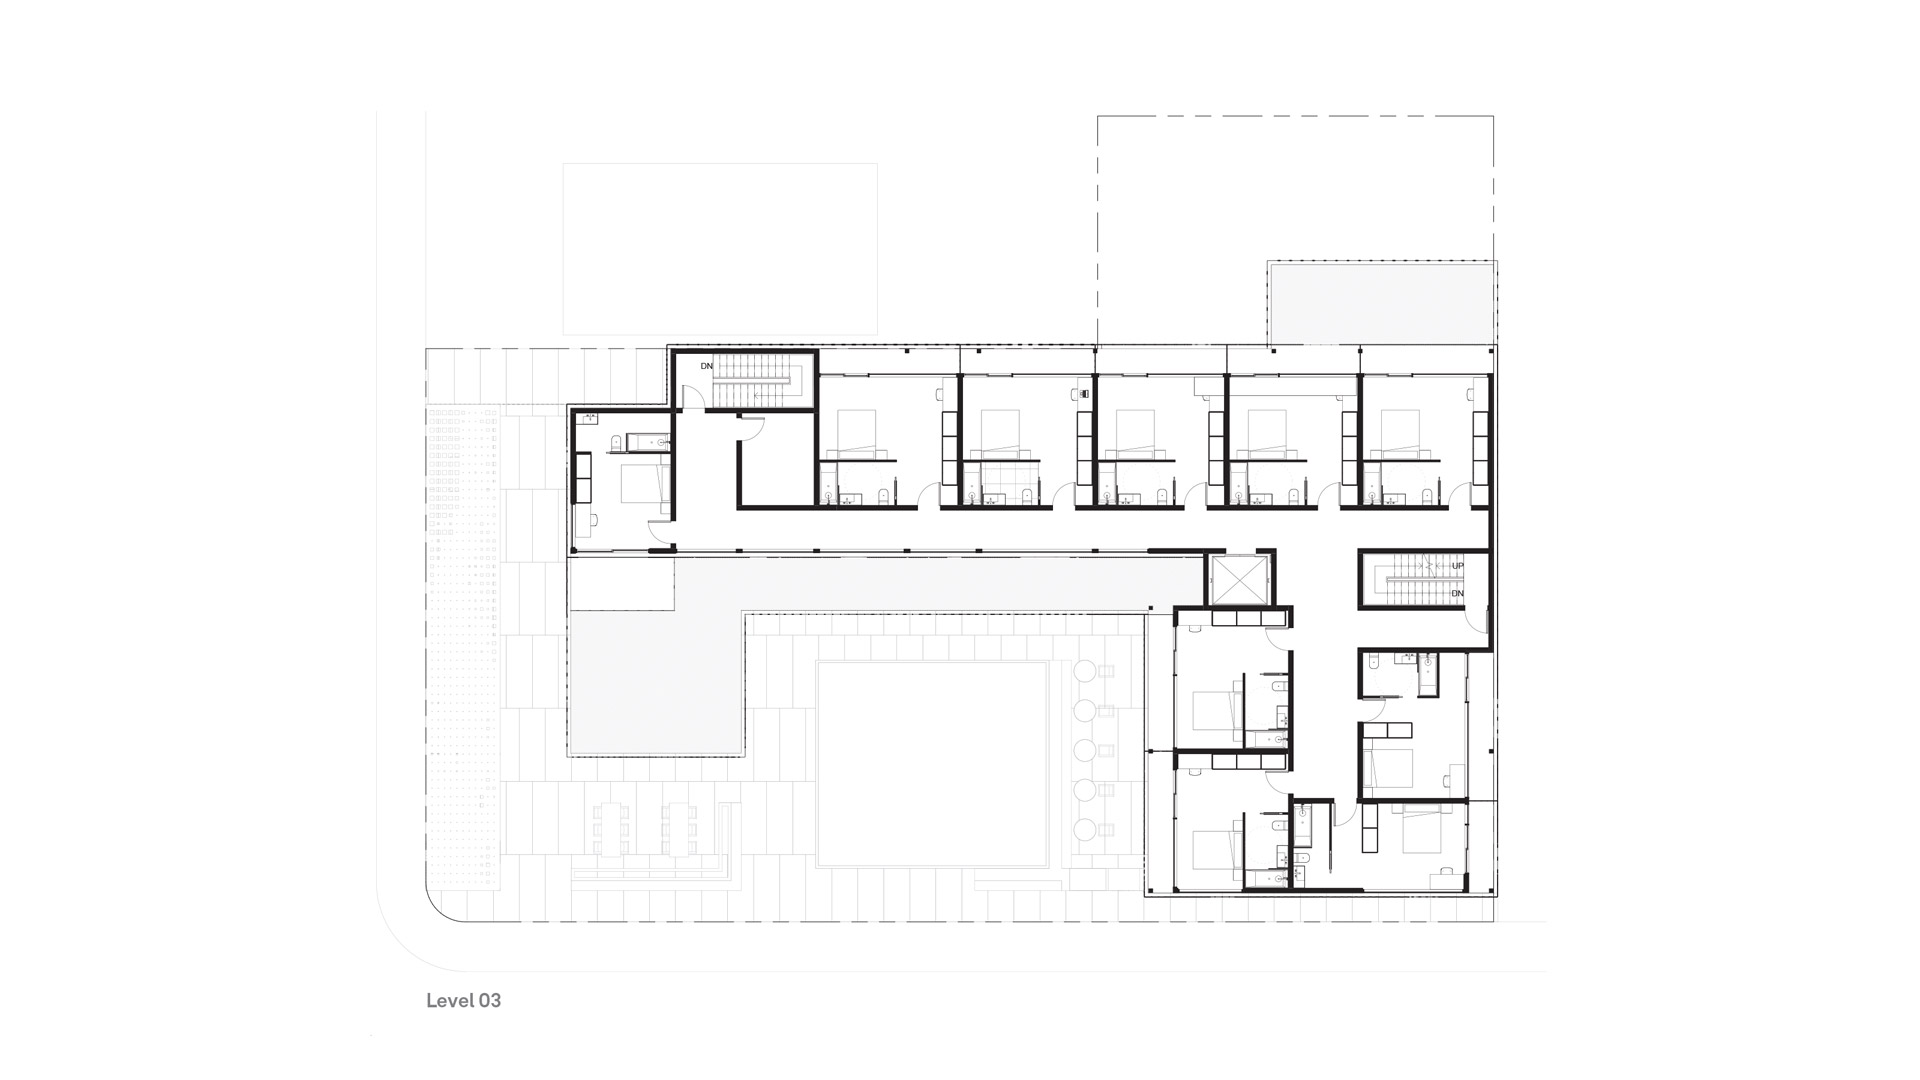 C7 Hotel + Brewery - Level 03 Plan — Timothy Mandody